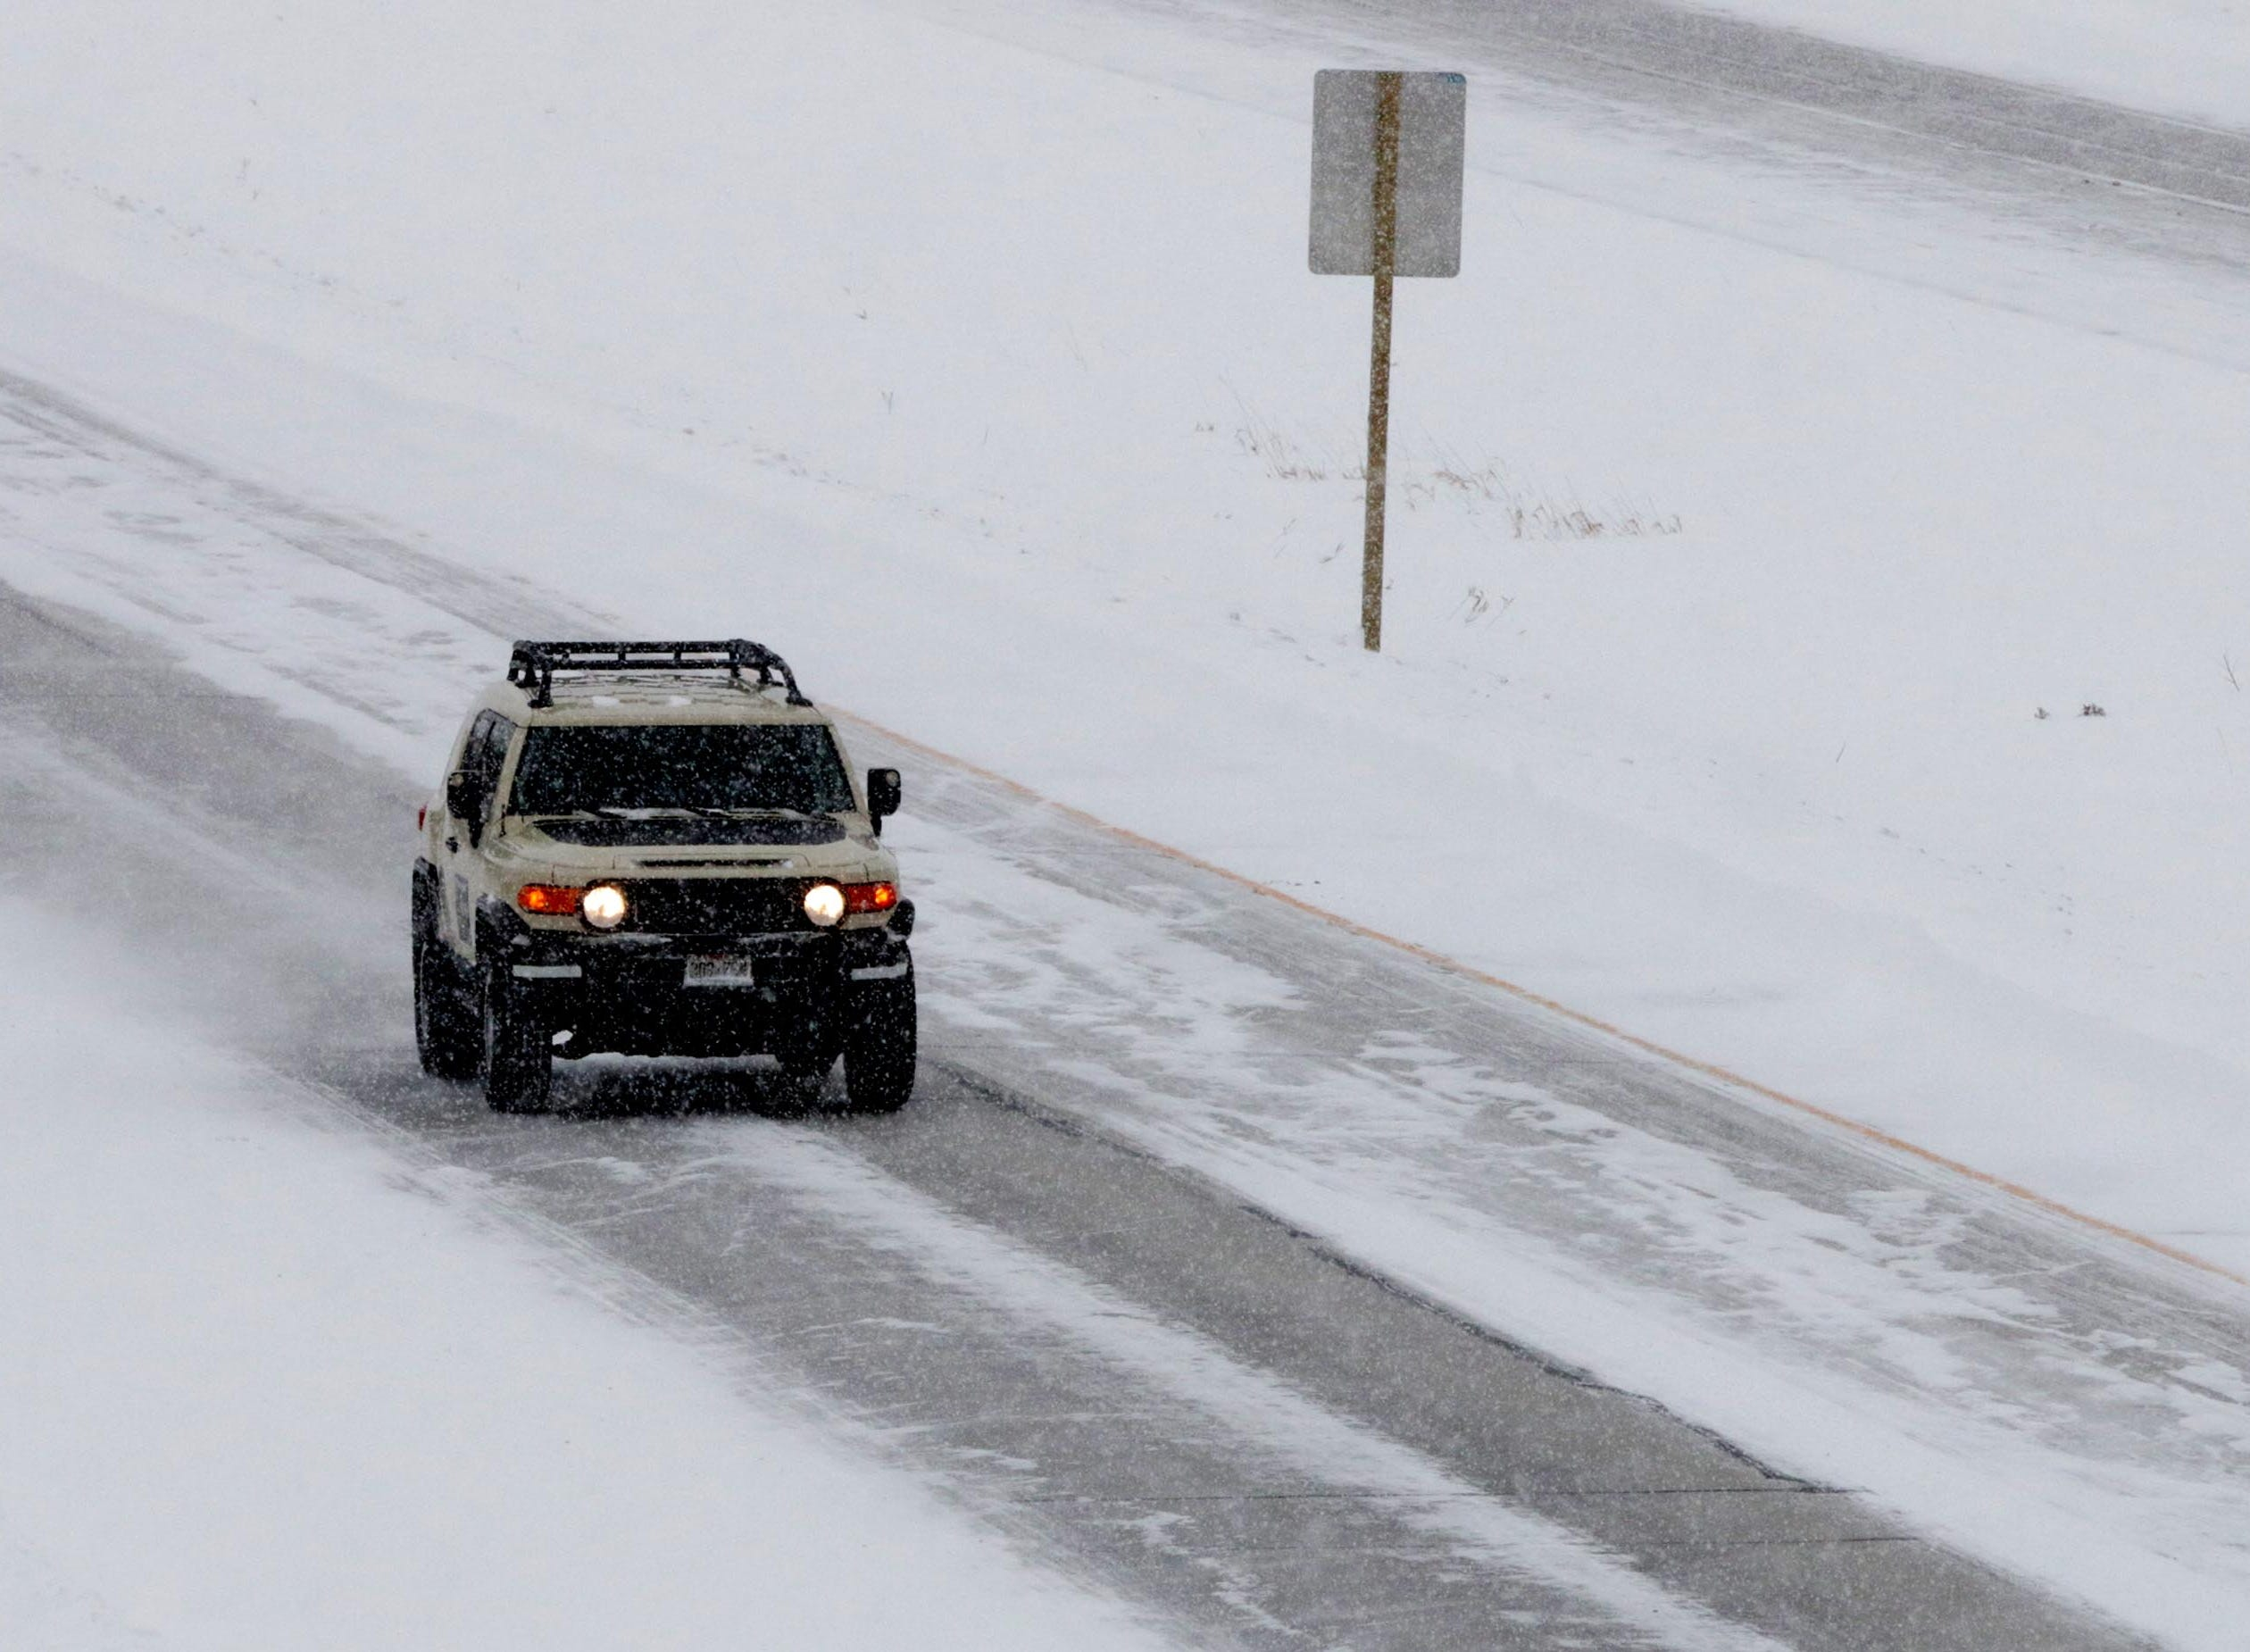 An all-wheel drive vehicle motors southbound on Interstate 43, south of the state Highway 42 exit, Monday, Jan. 28, 2019, in Sheboygan, Wis. According to Sheboygan County Sheriff Cory Roesler, due to the many closures of businesses and schools, incidents have been kept to a minimum.